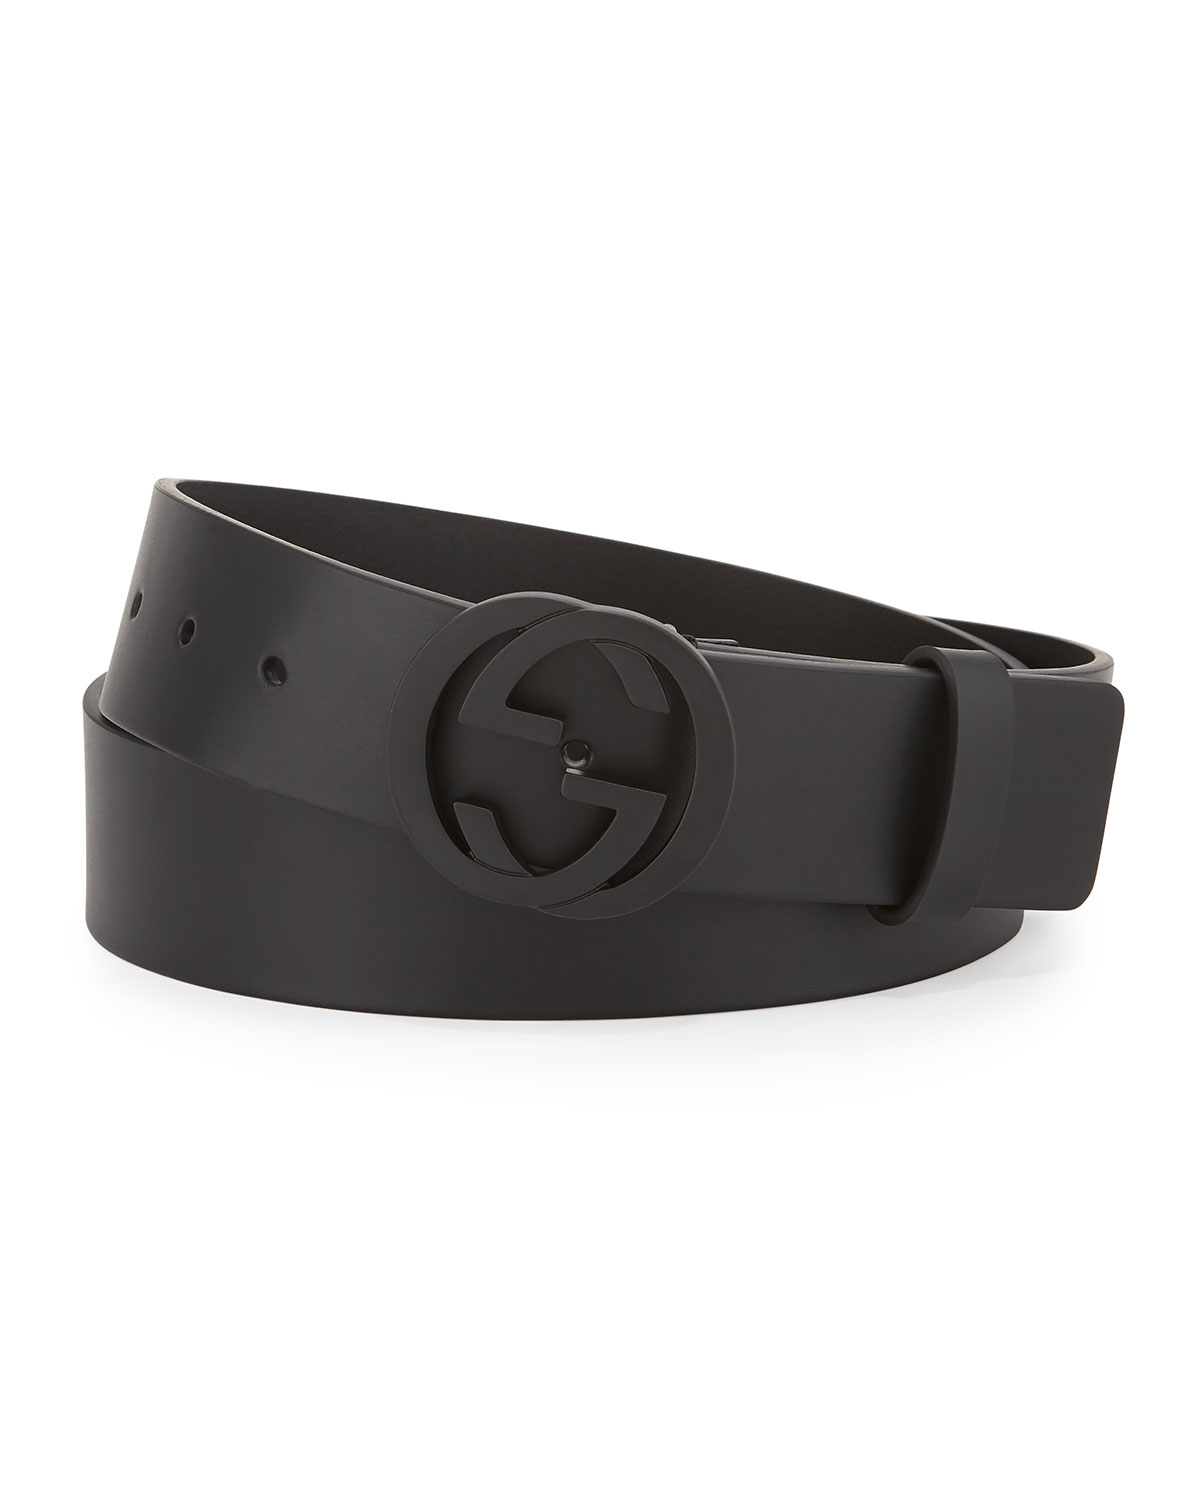 081663b53fc Gucci Leather Belt With G Buckle Black